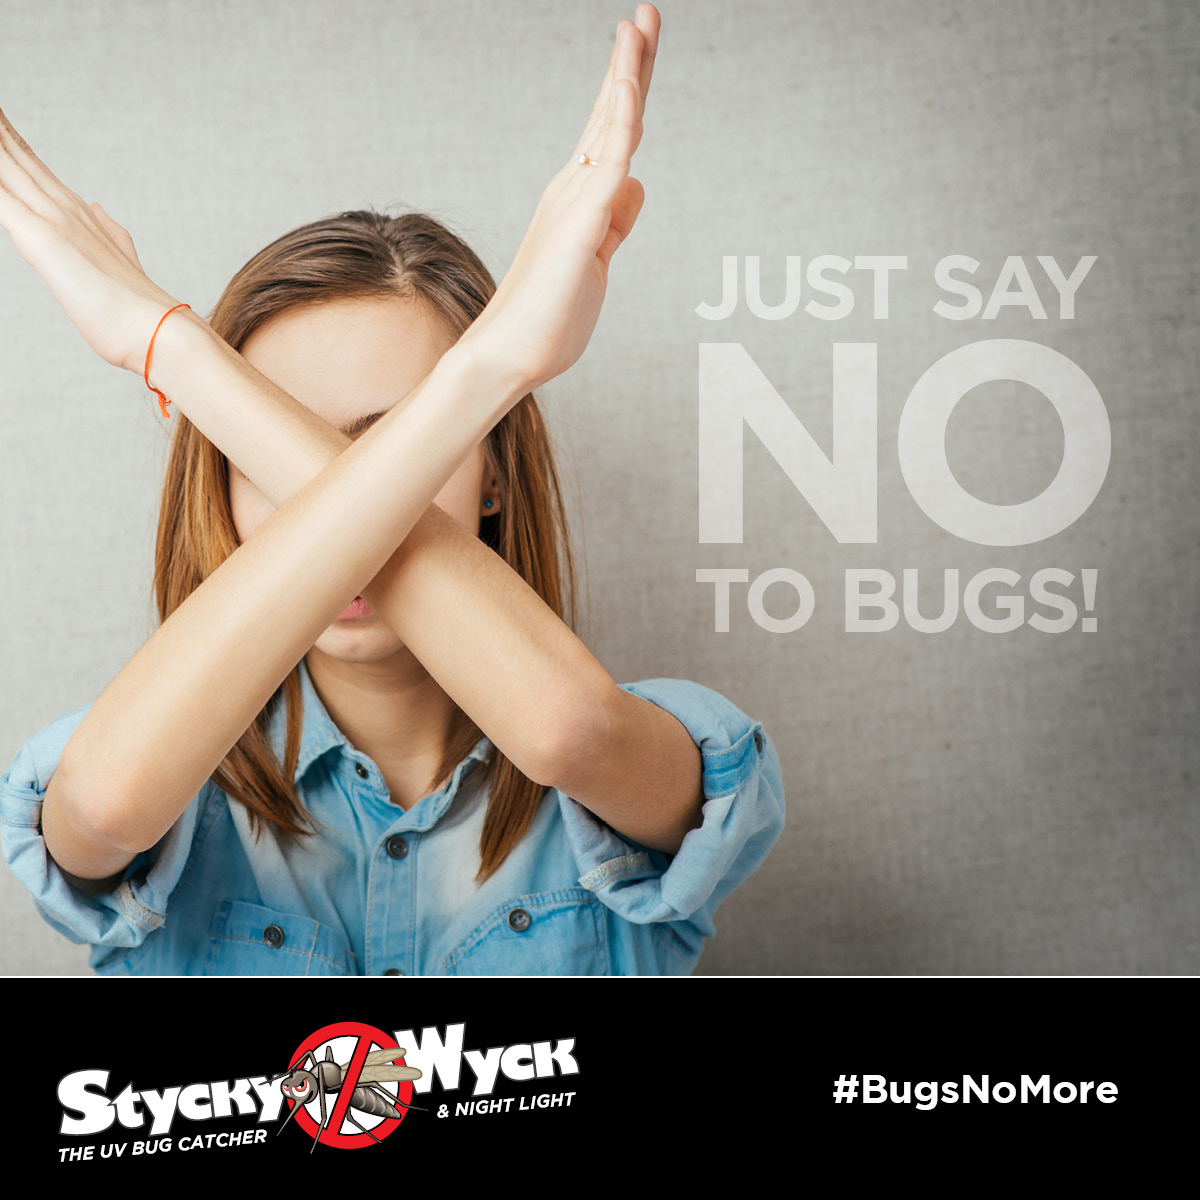 Just say no, to bugs! Ha! The beauty is that we don't have to say anything! Stycky Wyck has your back! #BugsNoMore!  #Kitchen #Bedroom #Bathroom #Basement #Office #HomeDecor #Home #HomeGoods #HomeRenovation #homes #HomeIdeas #homeimprovementpic.twitter.com/u2YHkSaK3S